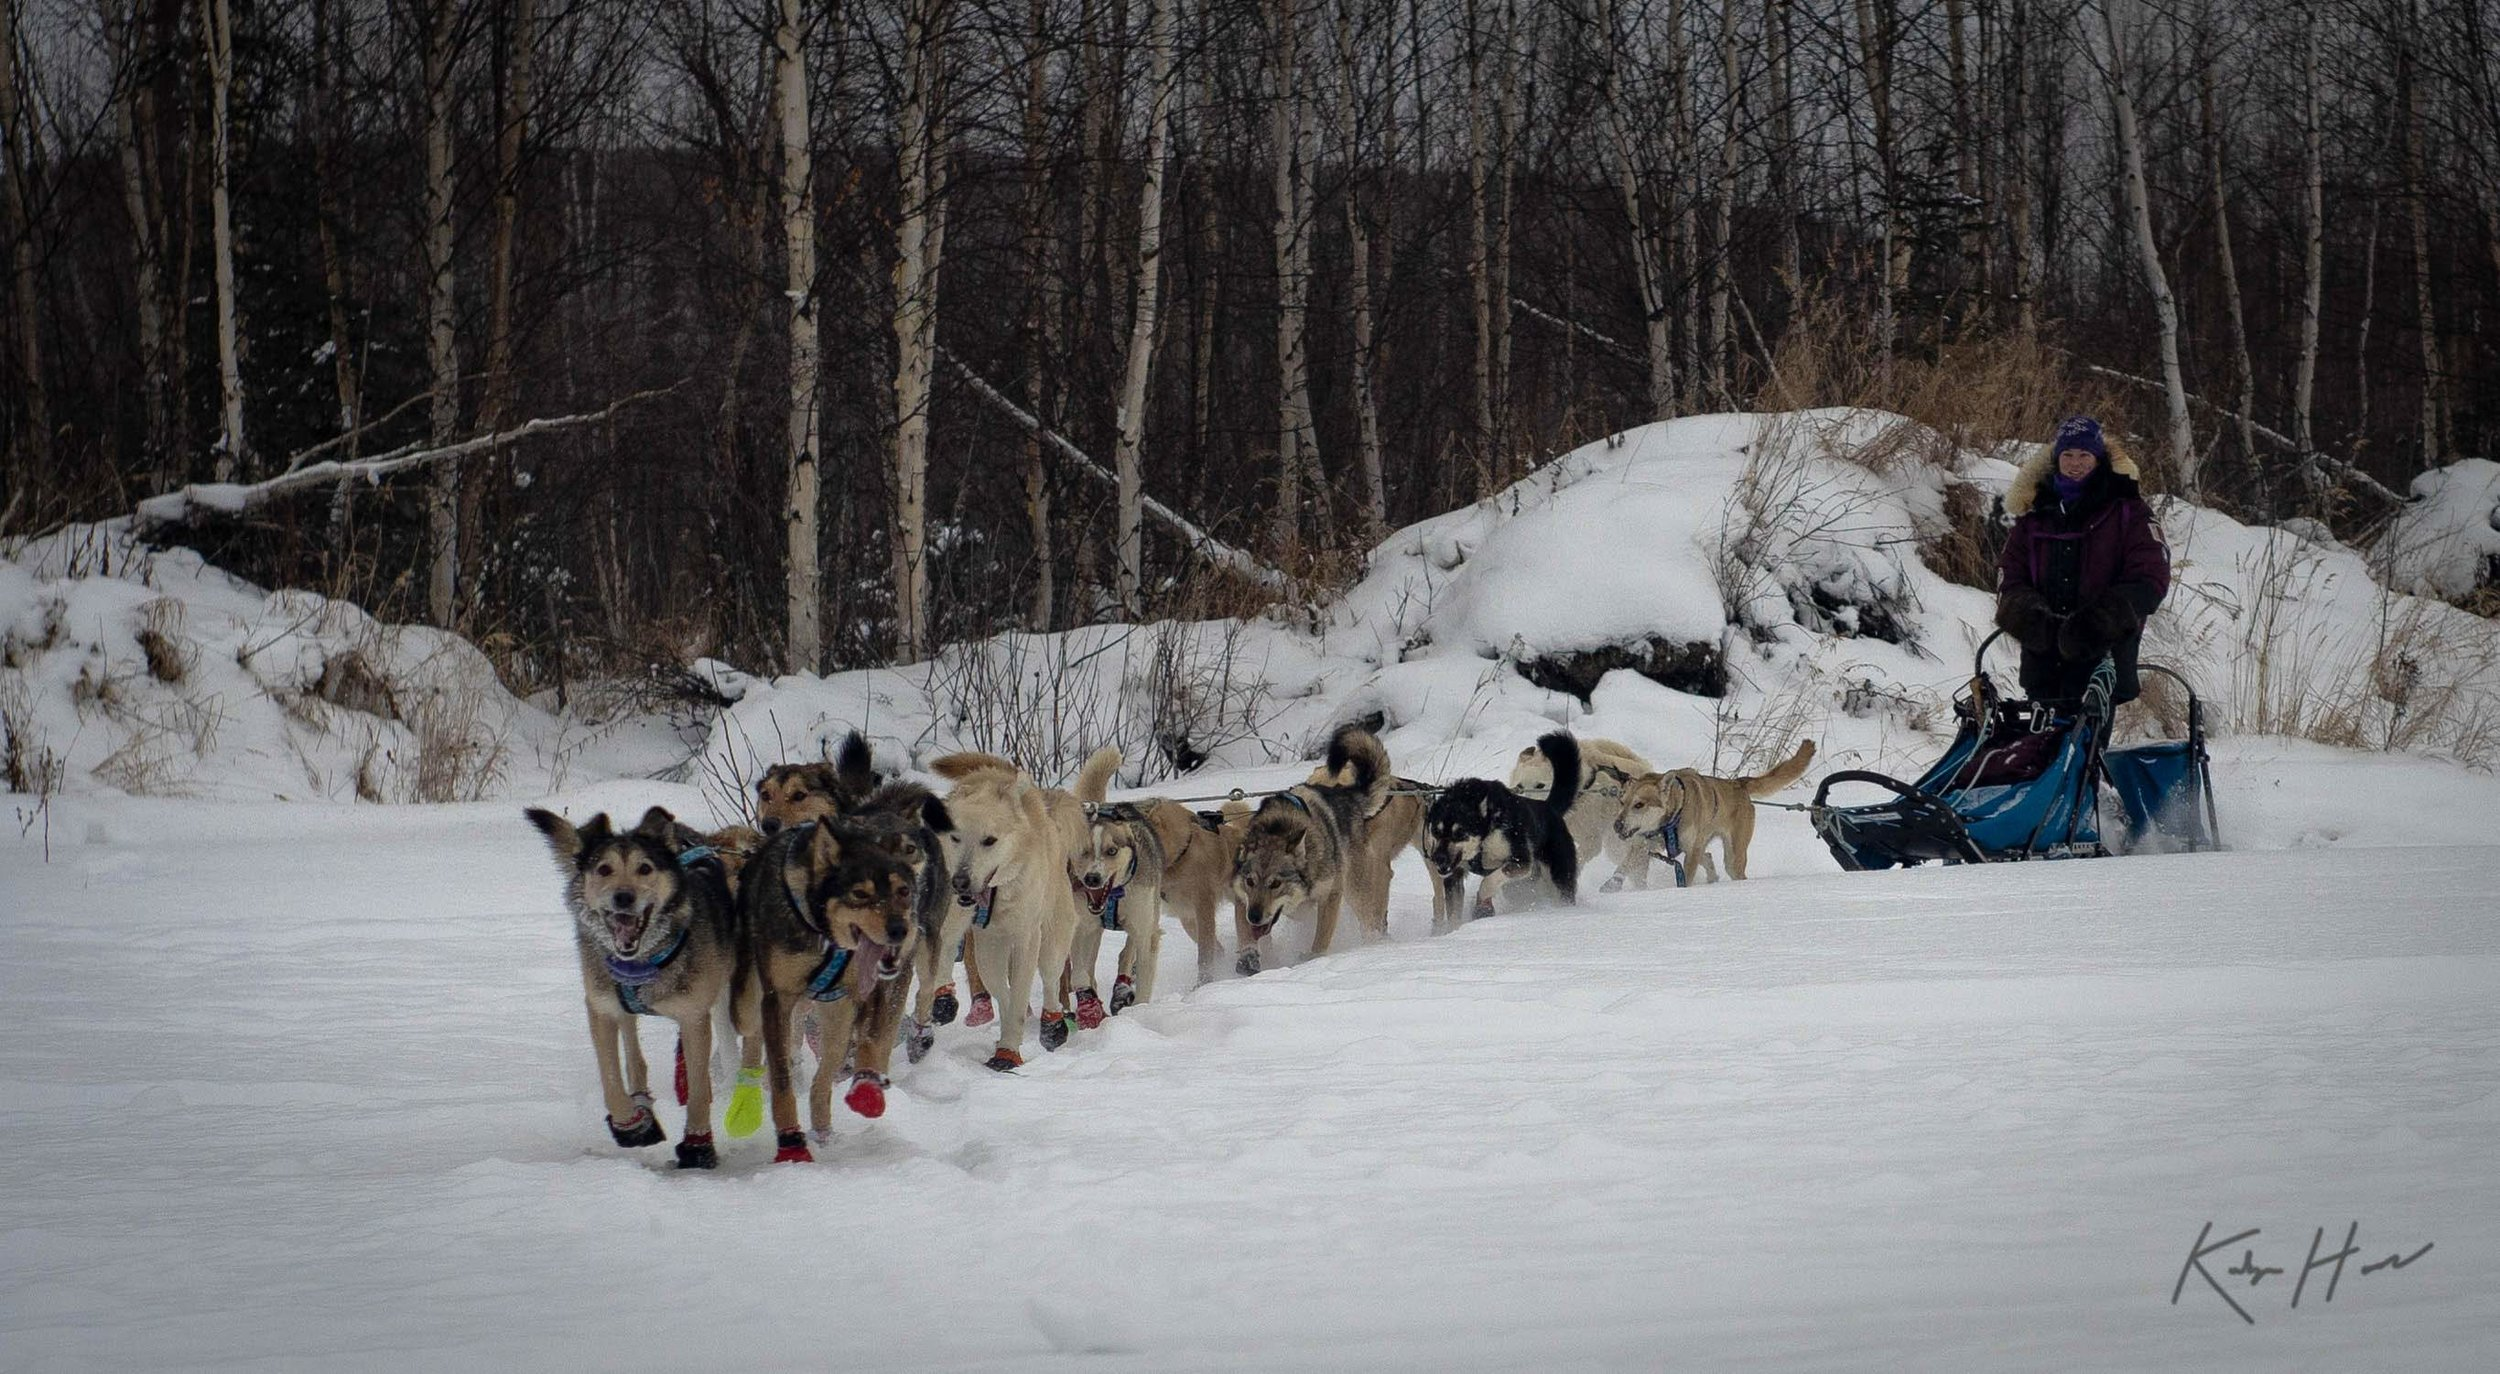 One of the final runs before the Yukon Quest